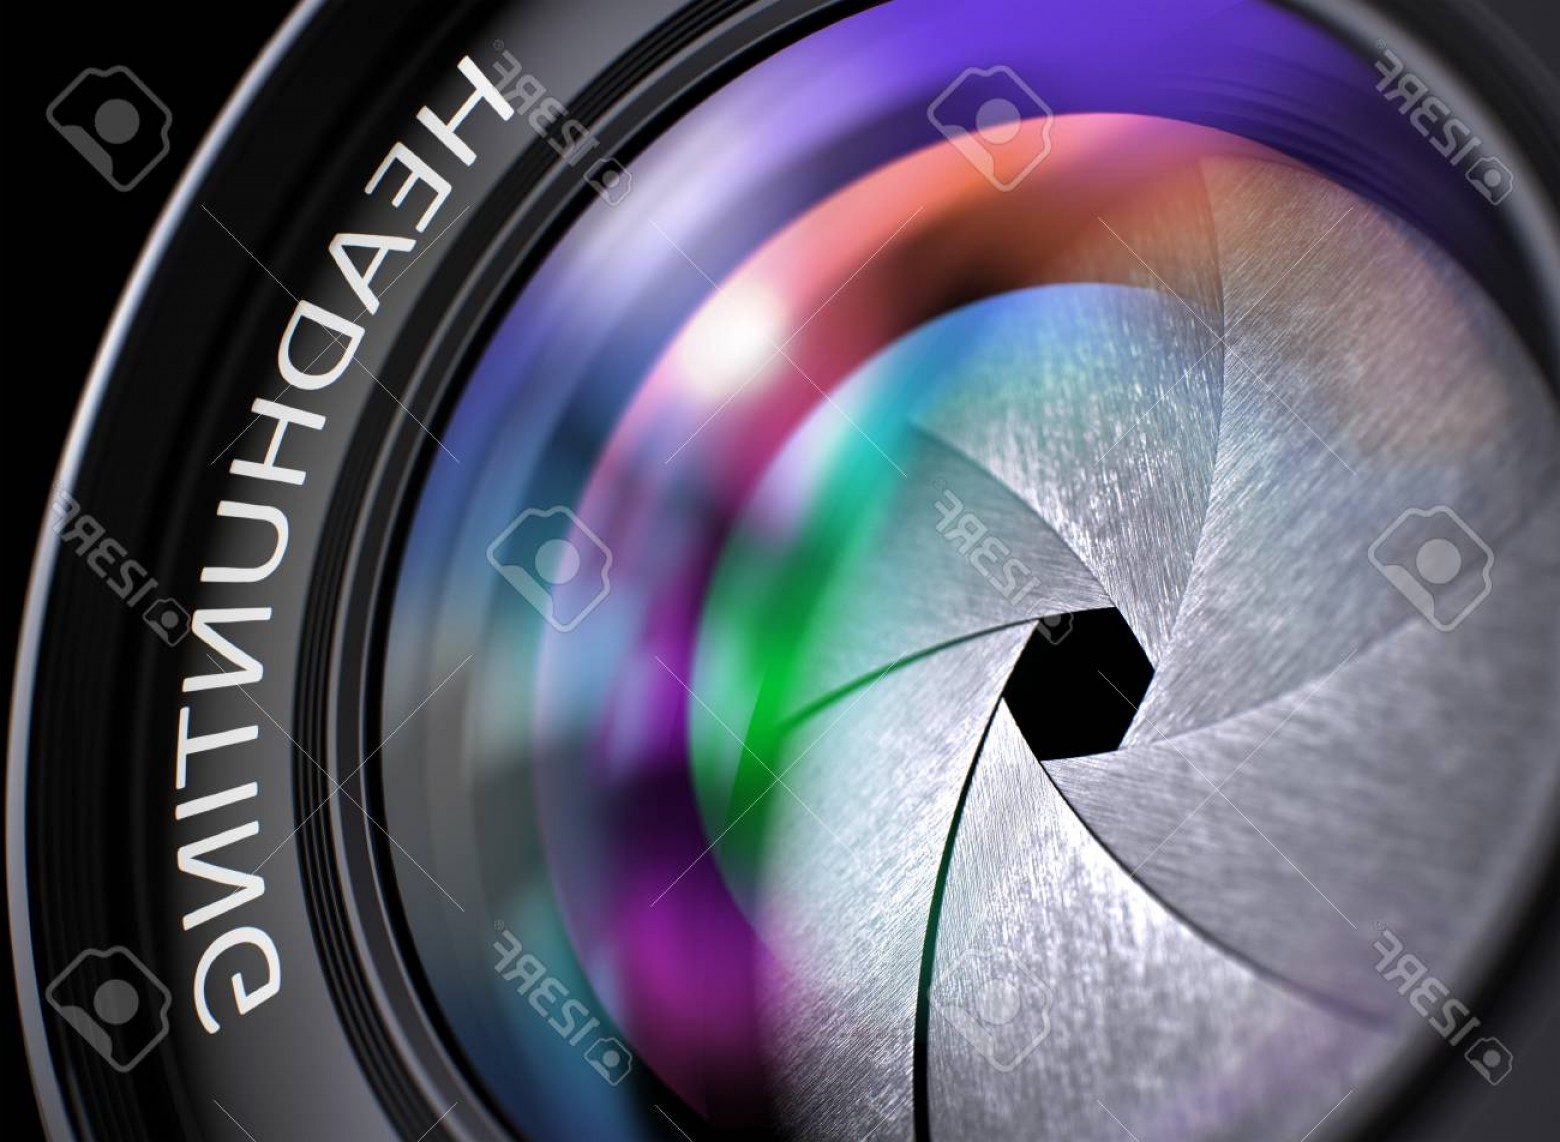 Hires Camera Lens Vector: Photoheadhunting Text On Front Of Camera Lens With Colored Light Of Reflection Closeup View Digital Camer